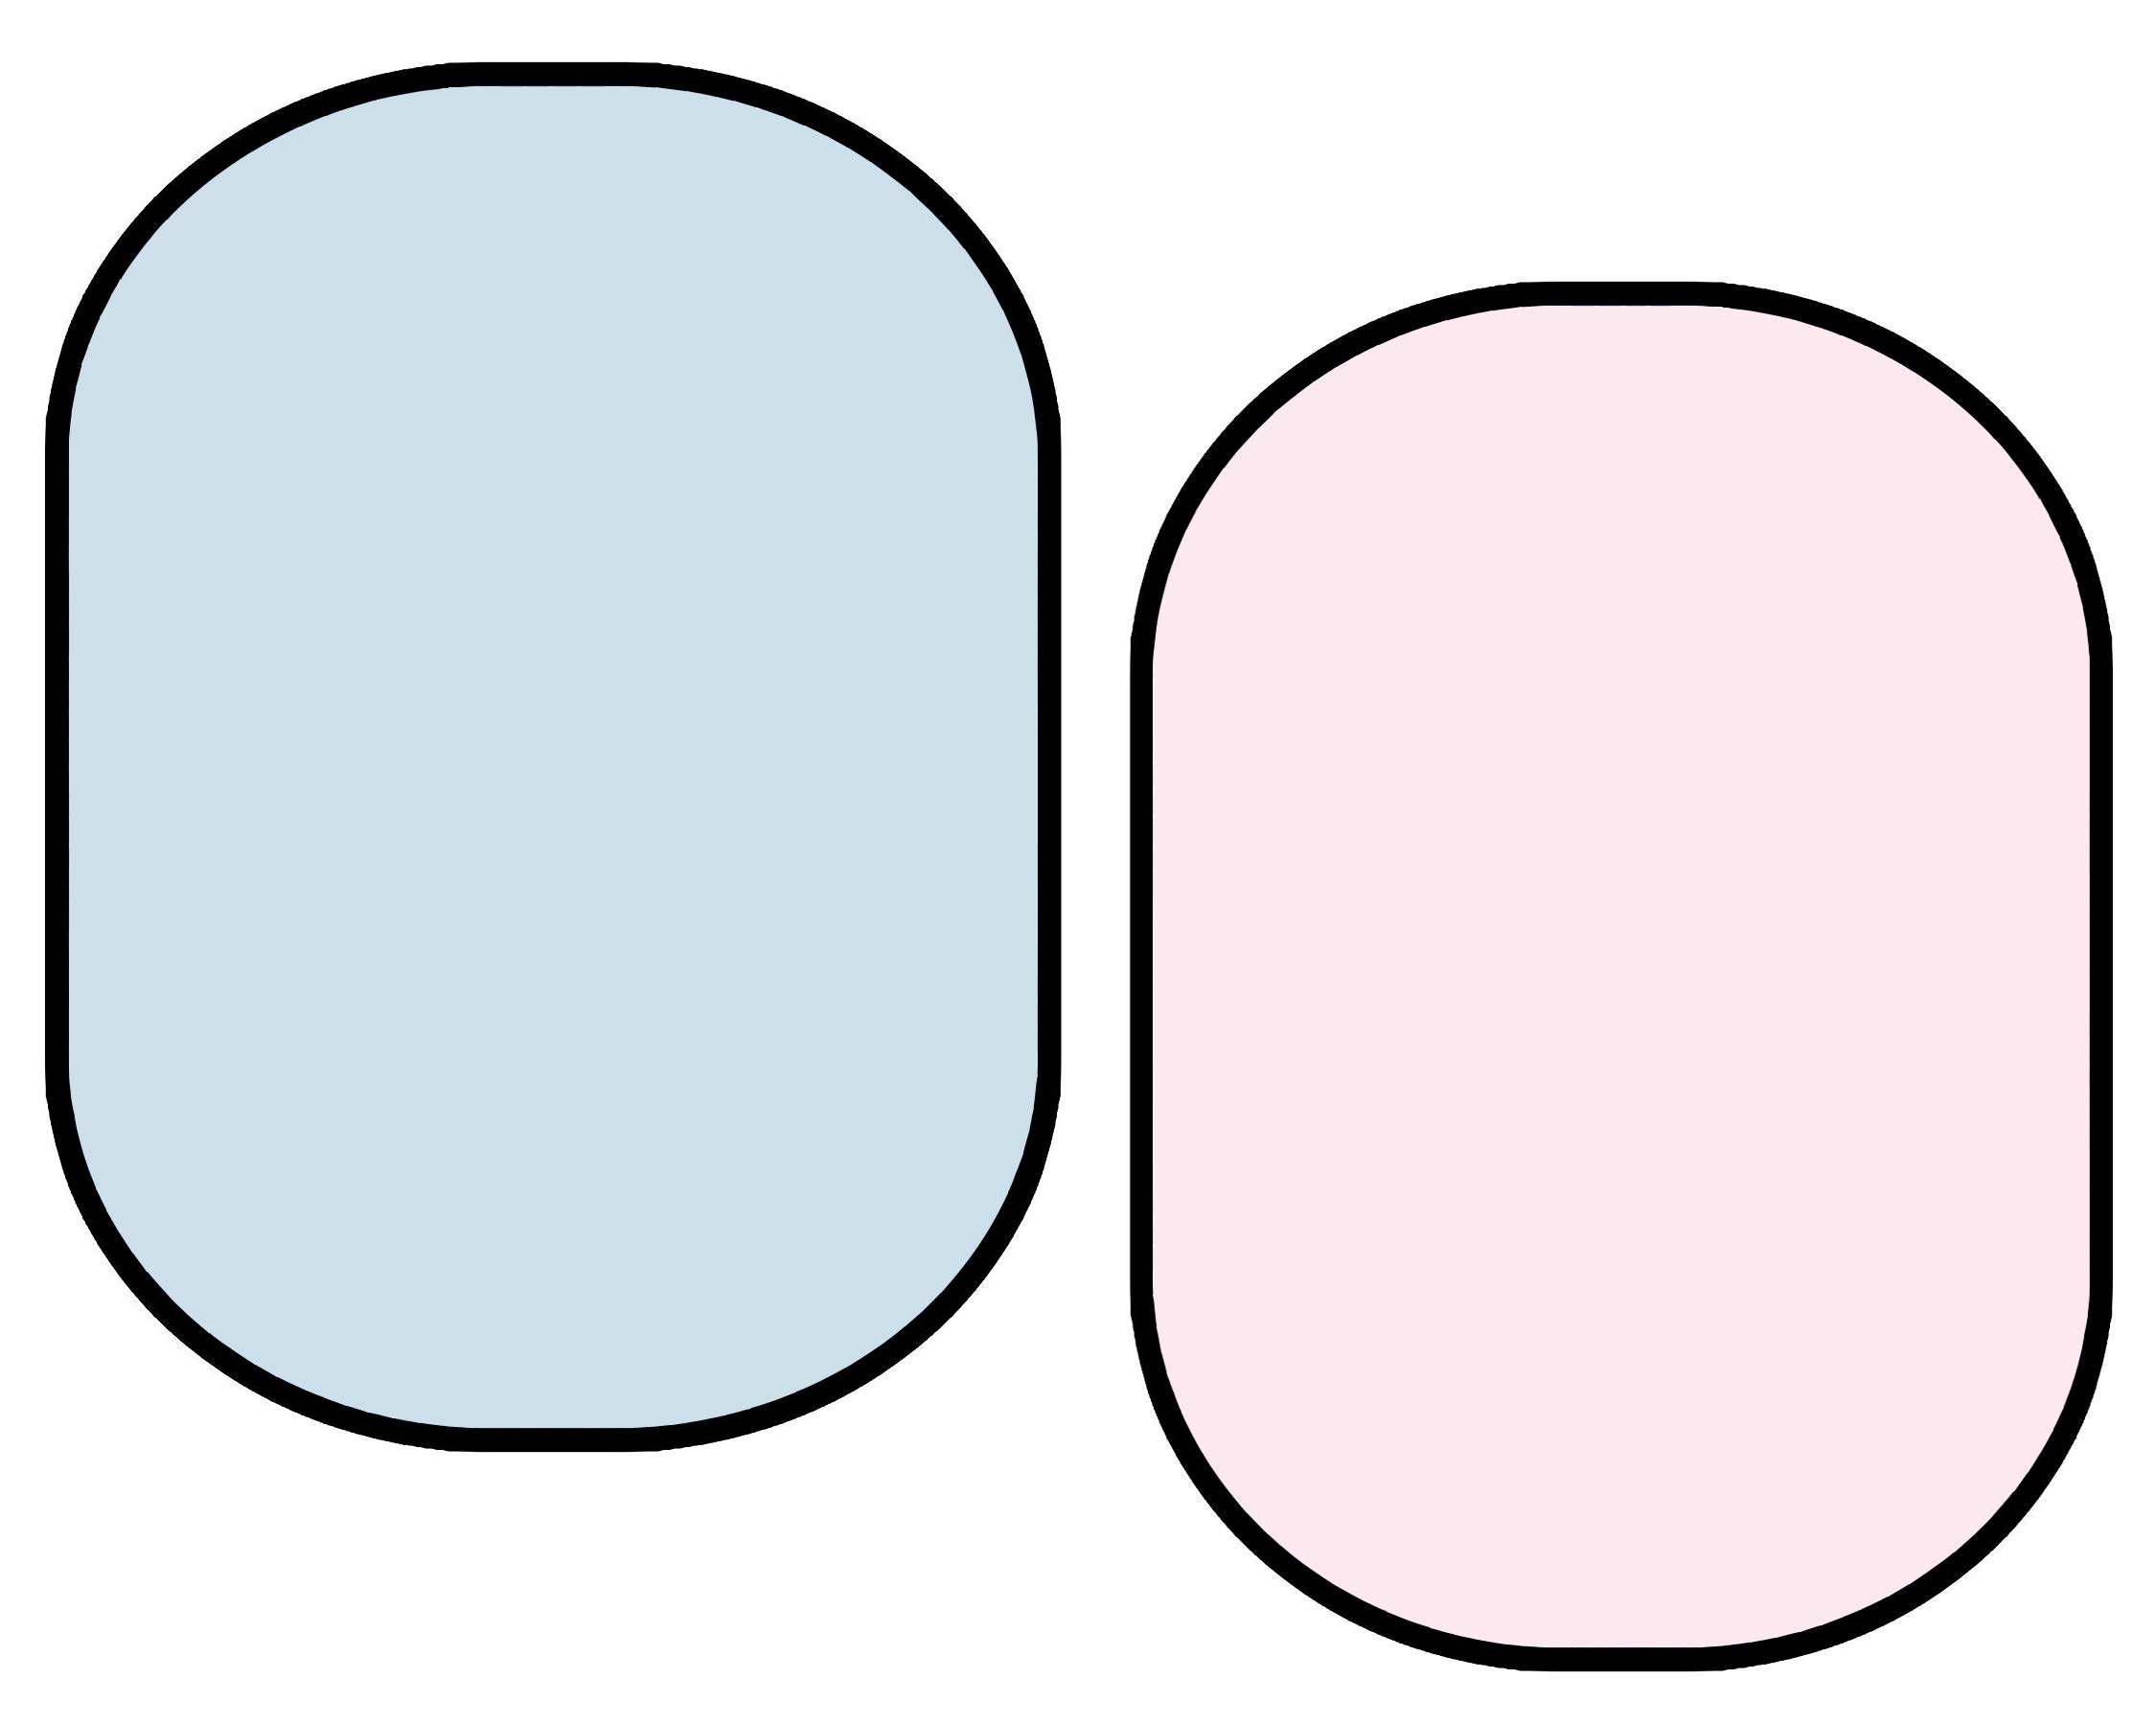 Kate 5x6.5ft Light Blue Double Sided Backdrop Pink Double Sided Backdrop for Photography Collapsible Background Photo Booth Props by Kate